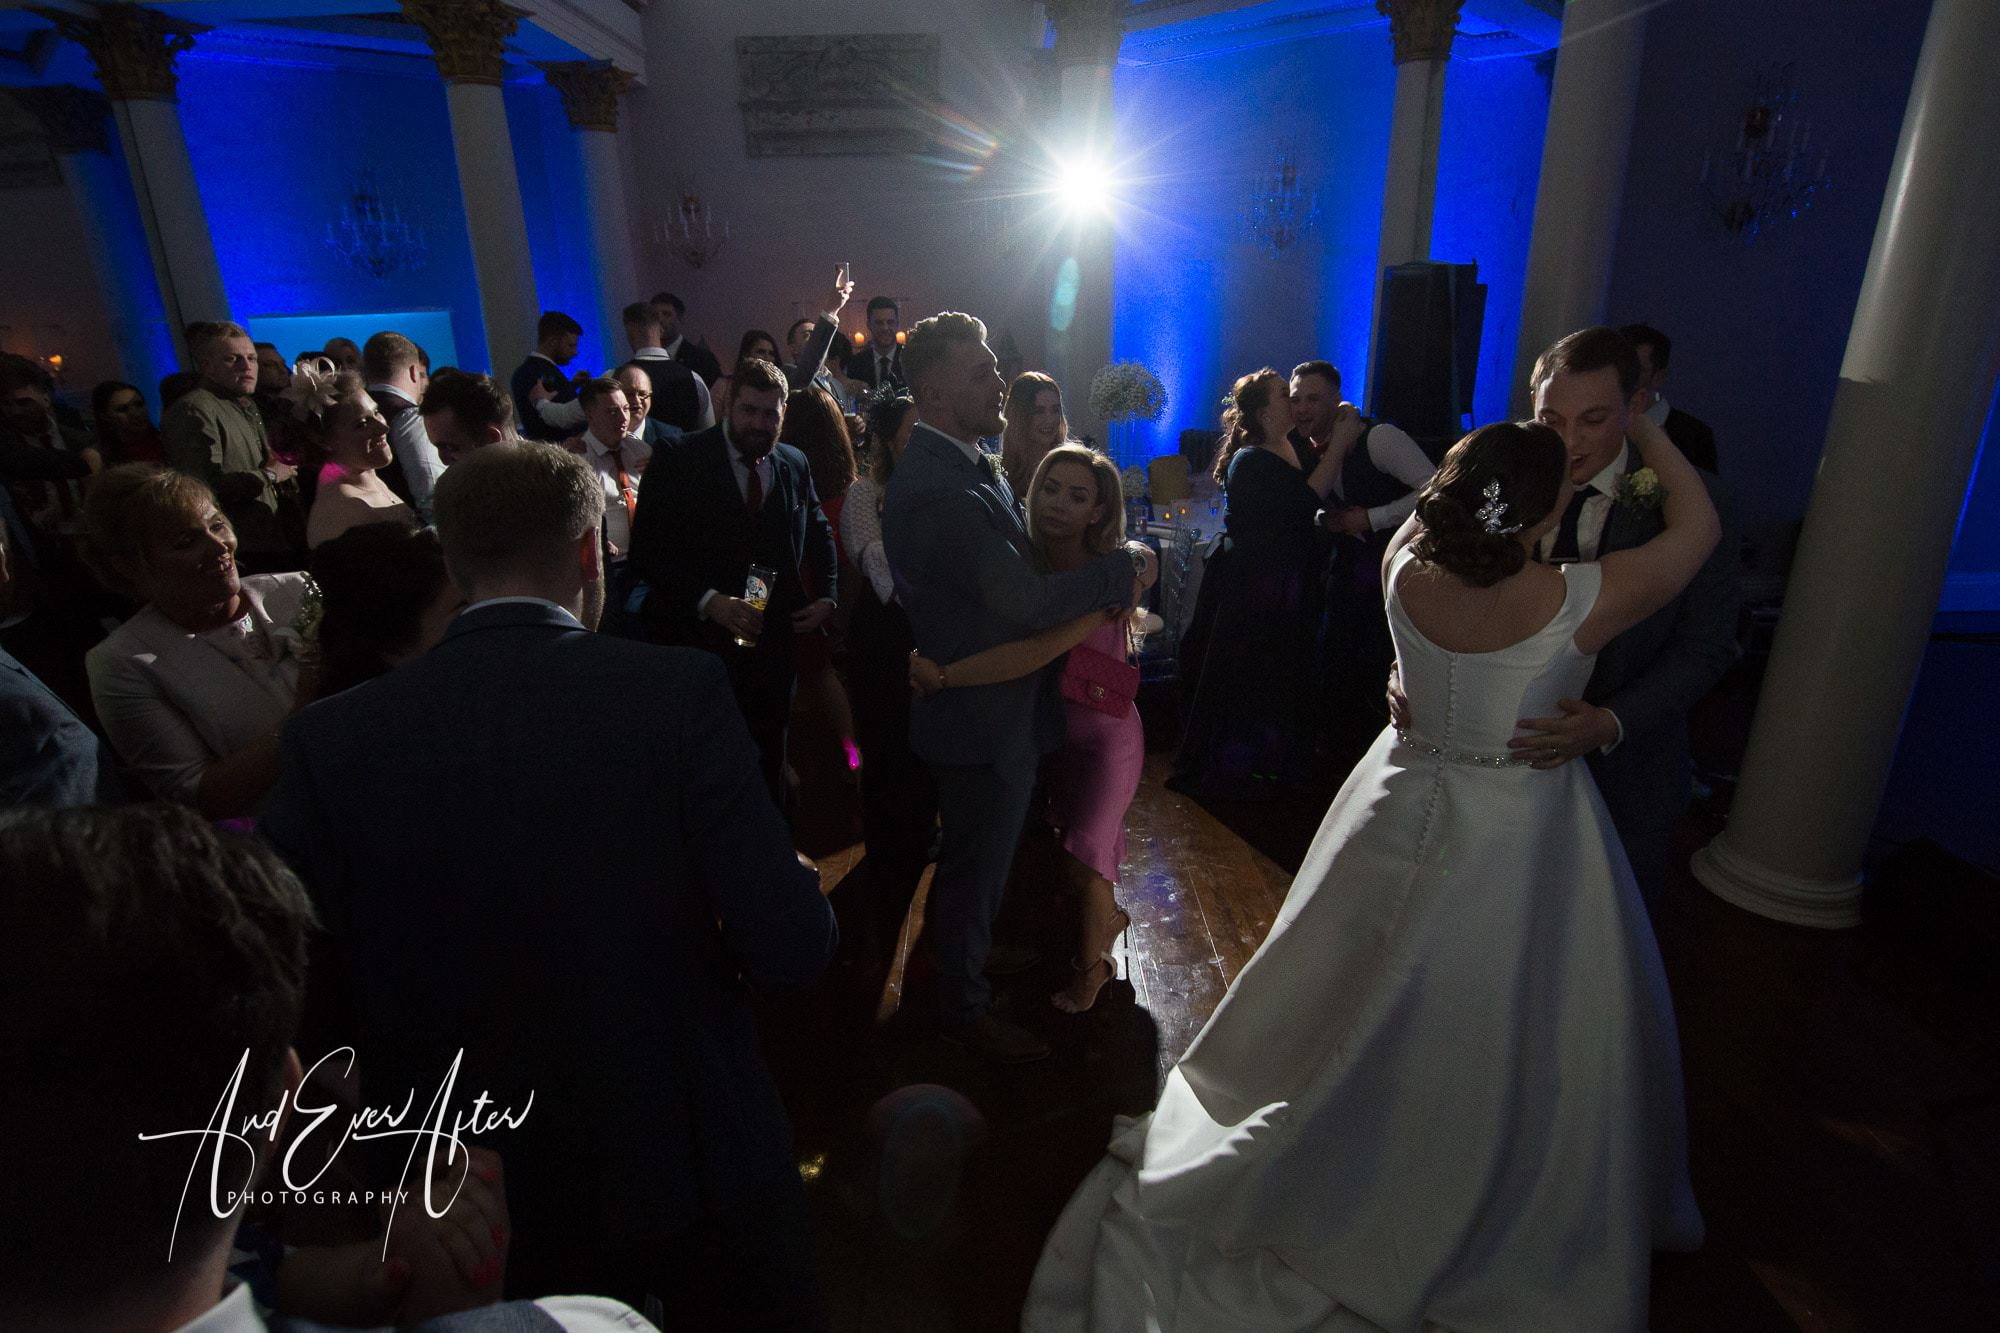 Wedding dance, bride and groom